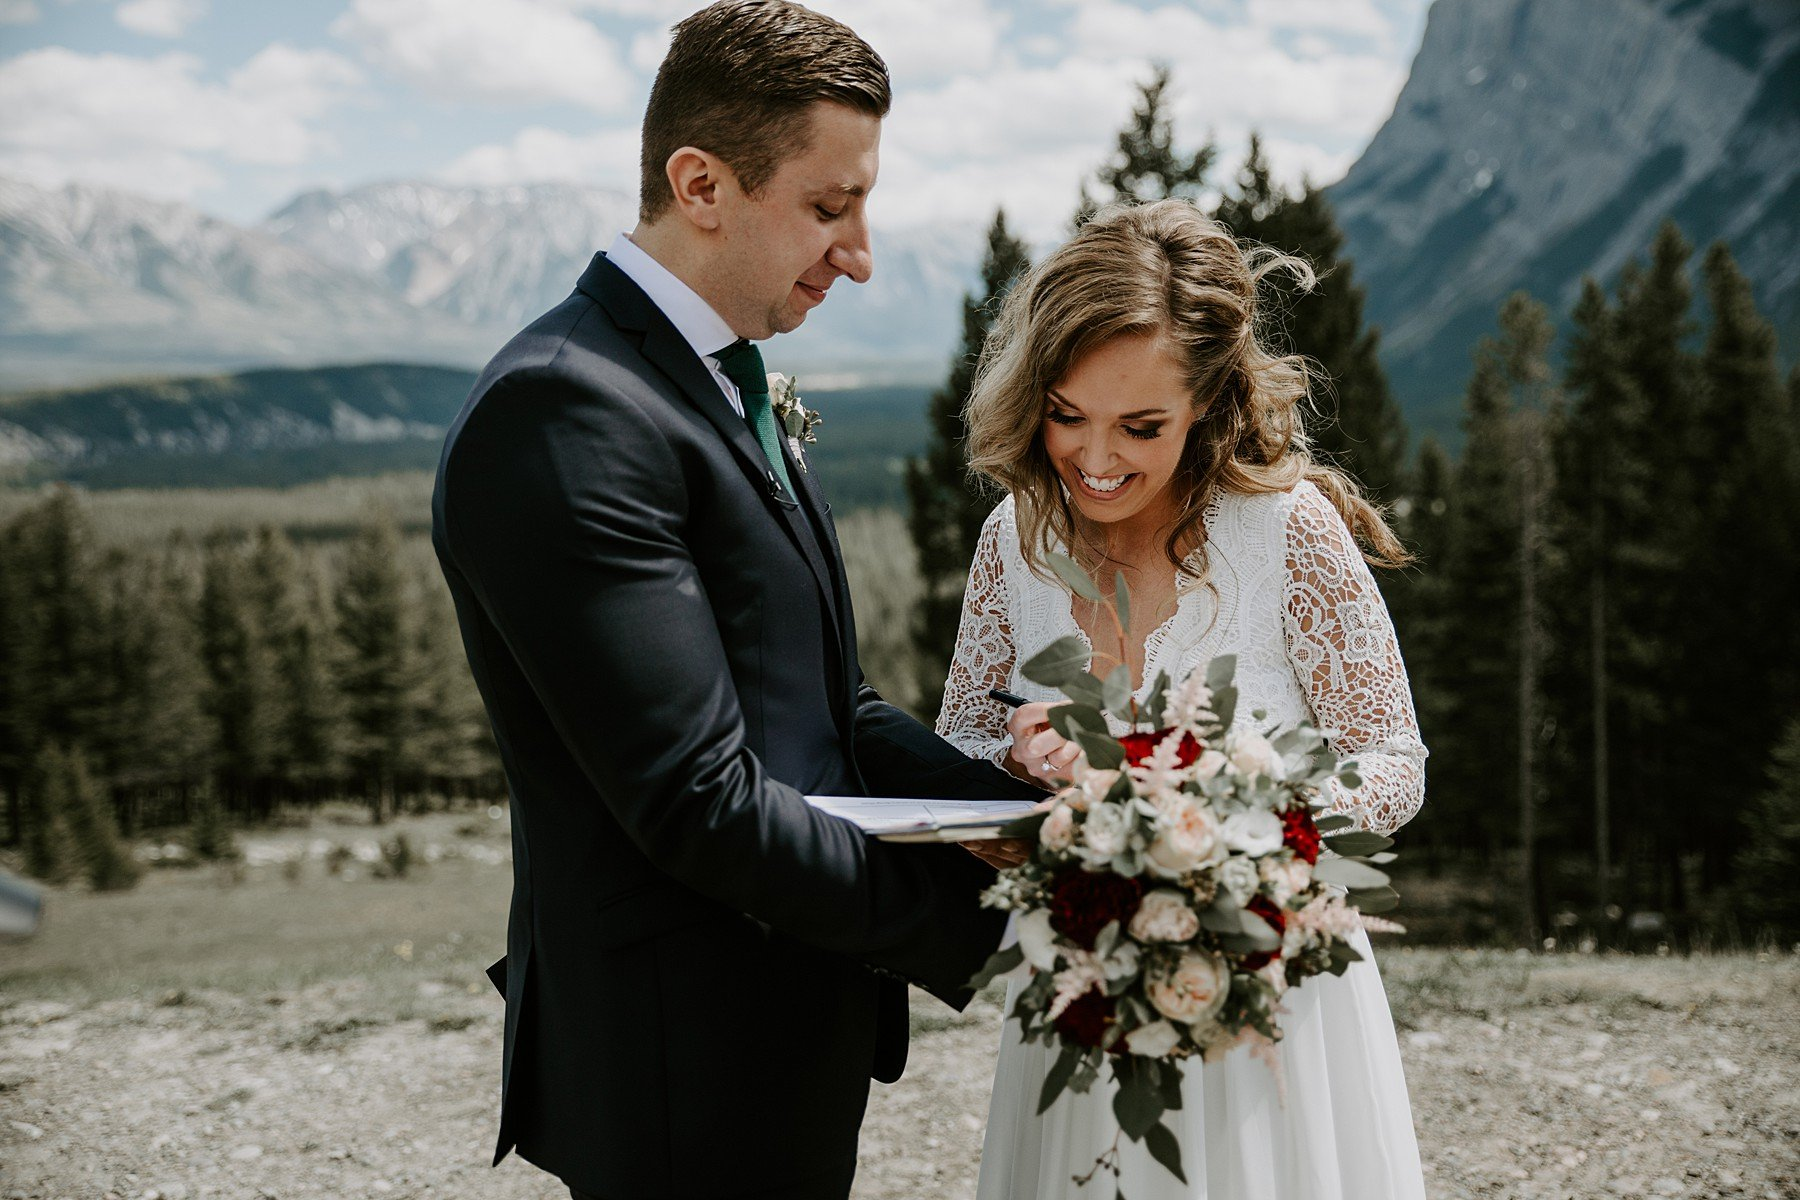 Teller of Tales Photography - Elopement - Tunnel Mountain Banff-52.jpg